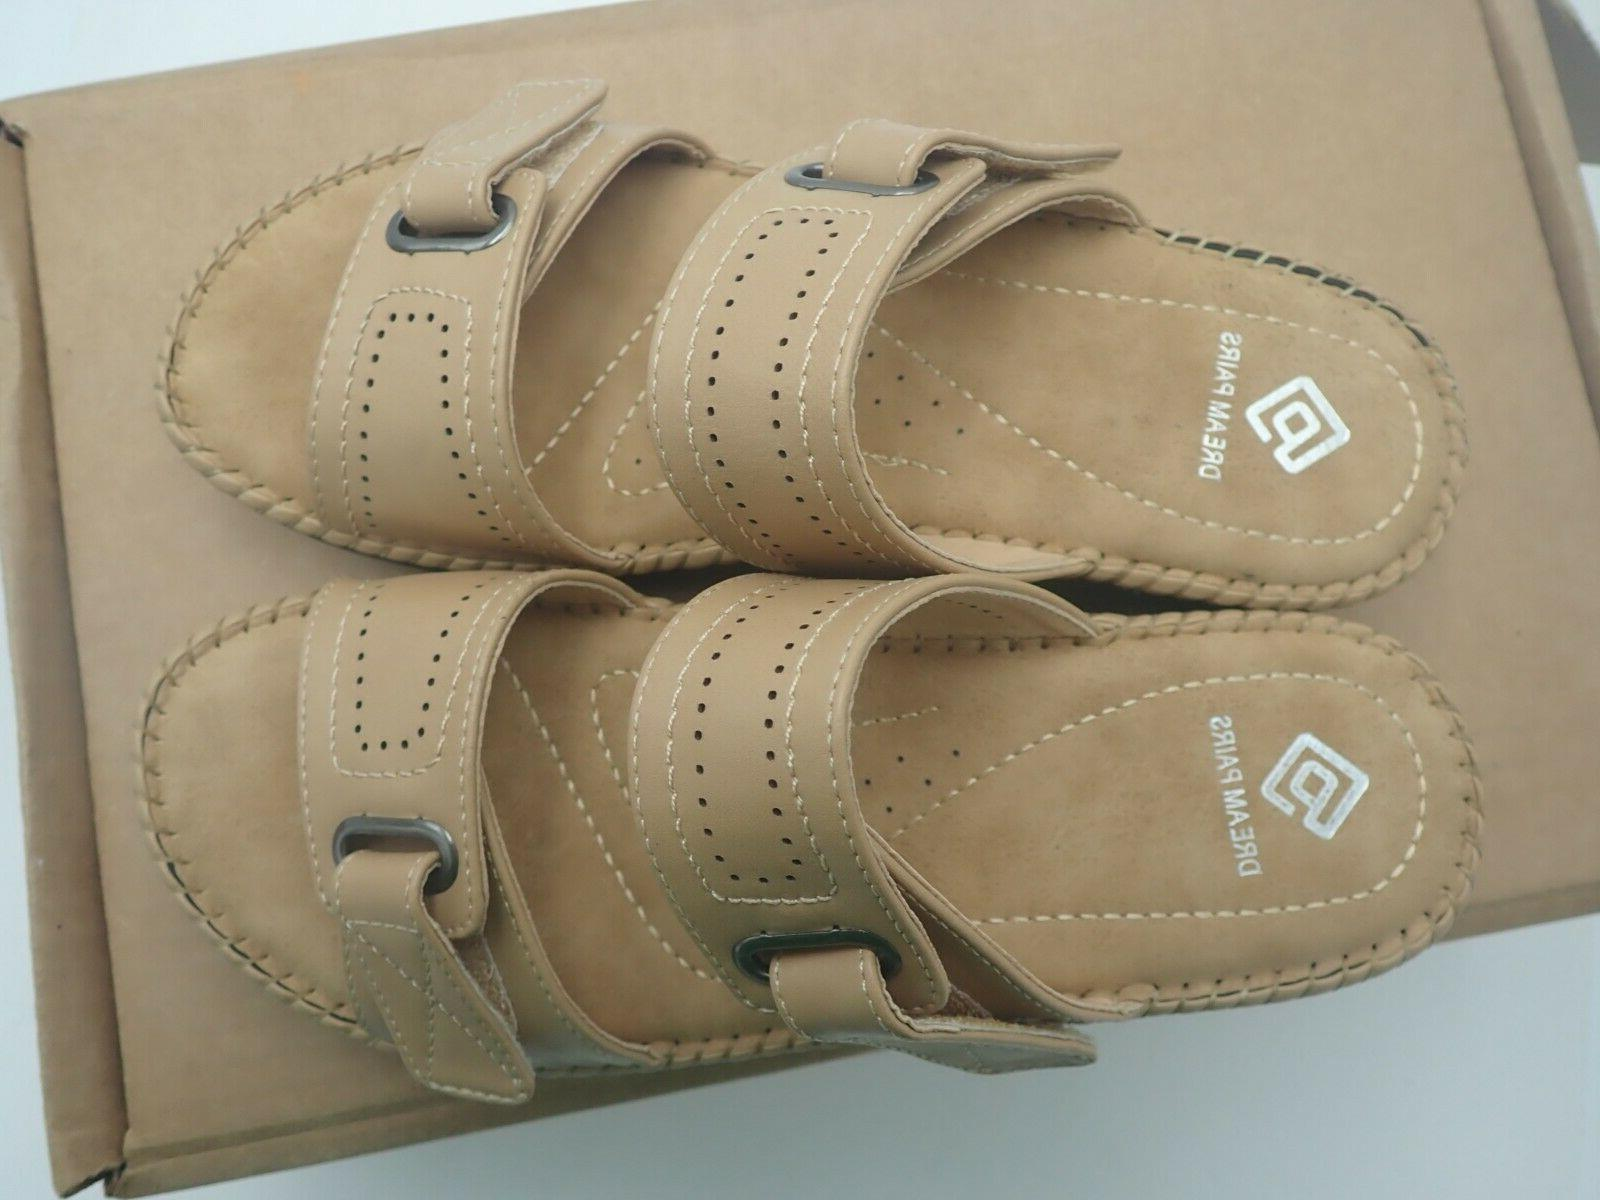 DREAM PAIRS Beige Wedges Slides Sandals Size M